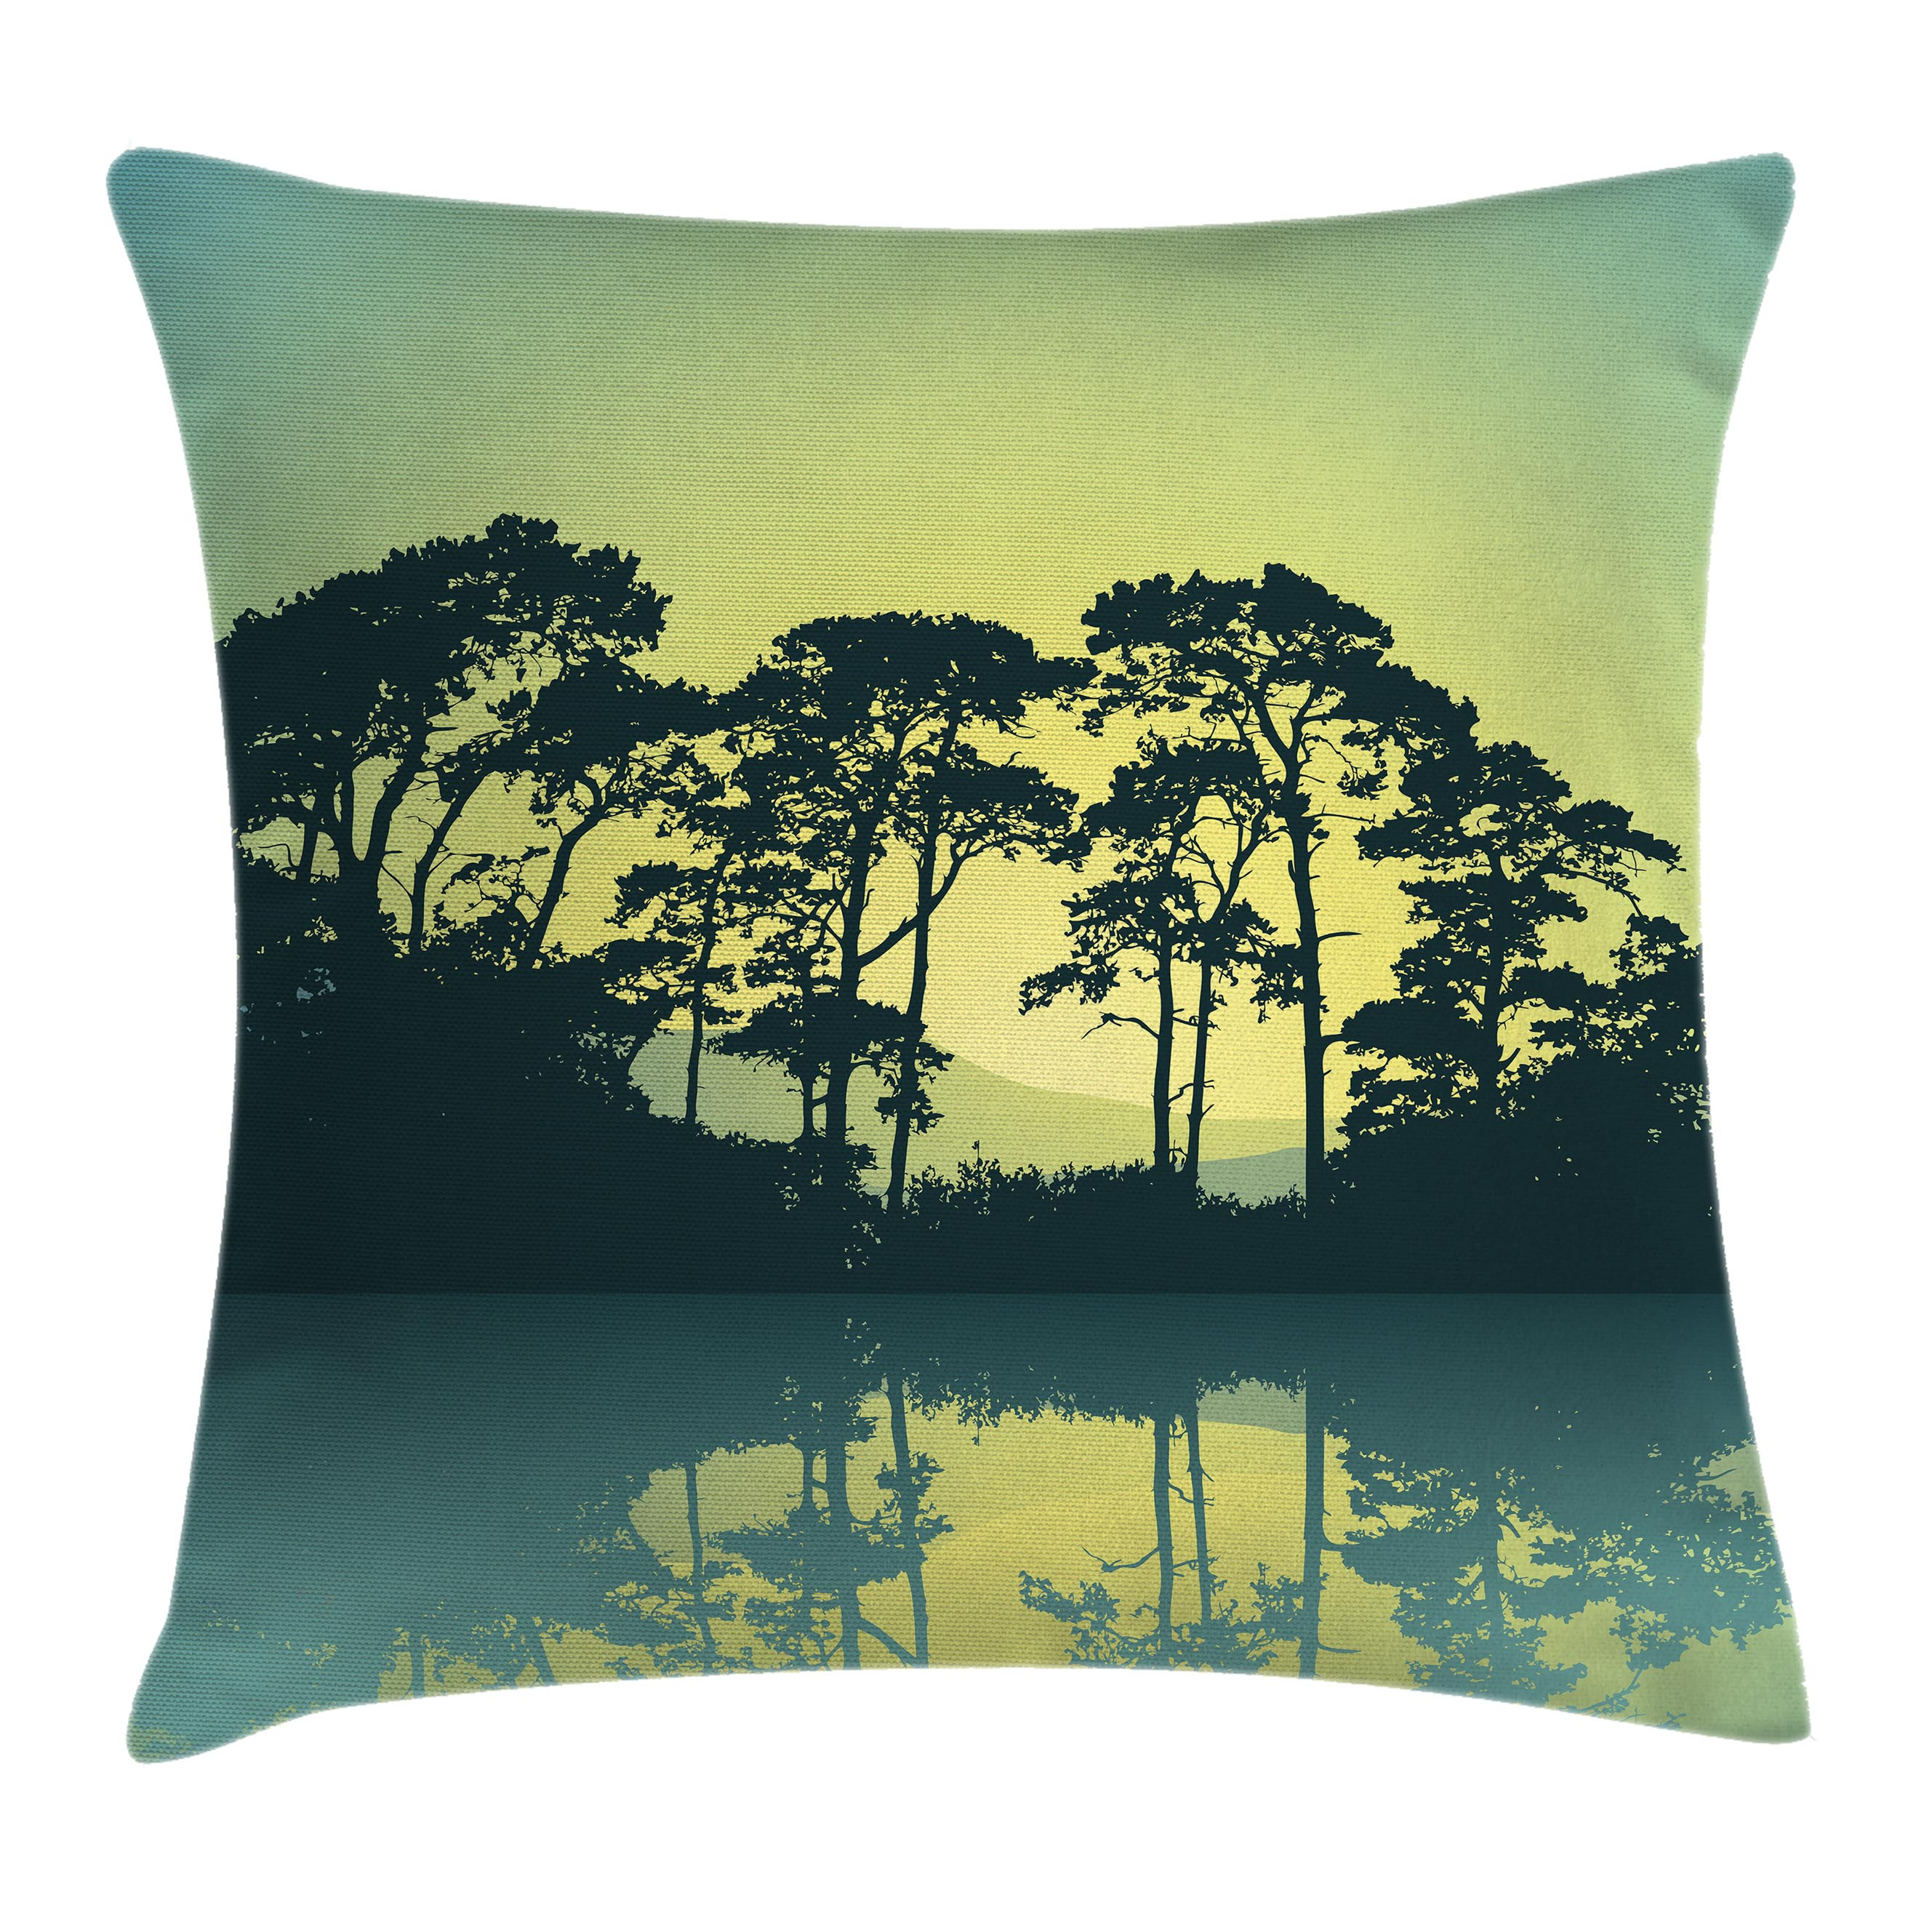 River Forest Apartments: Apartment Decor Throw Pillow Cushion Cover, Mystic Forest